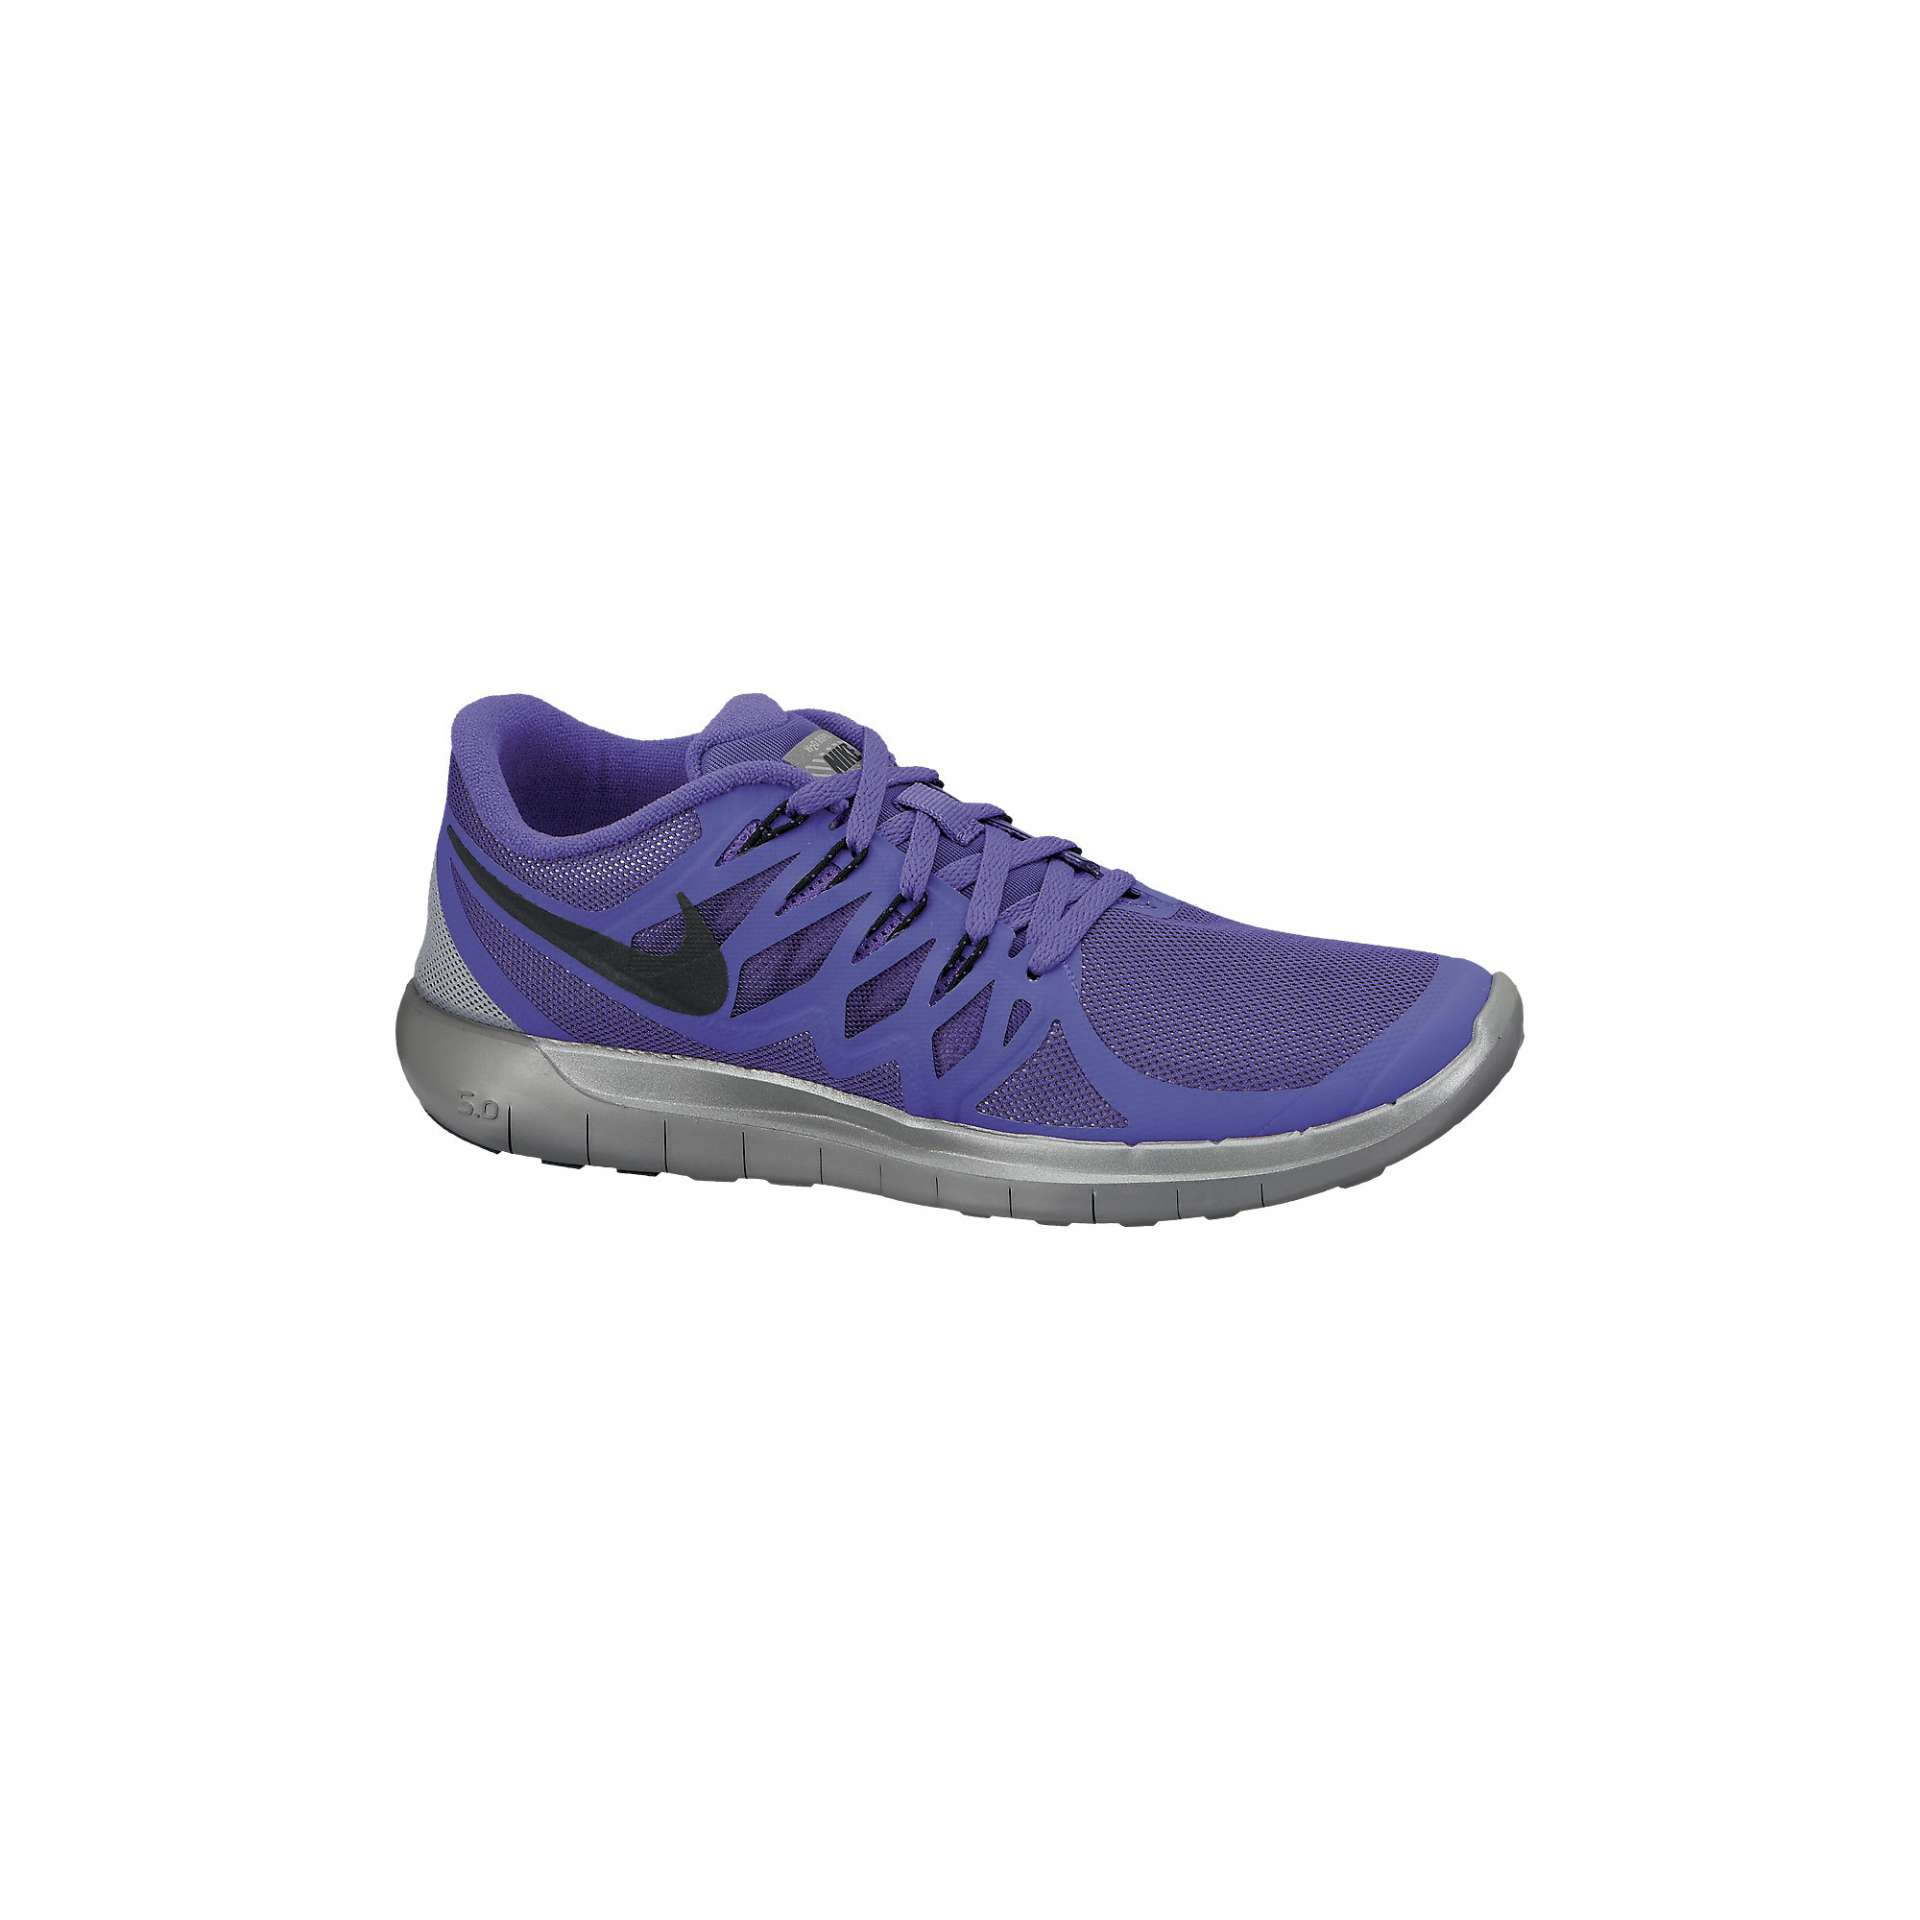 nike free 5.0 flash dames